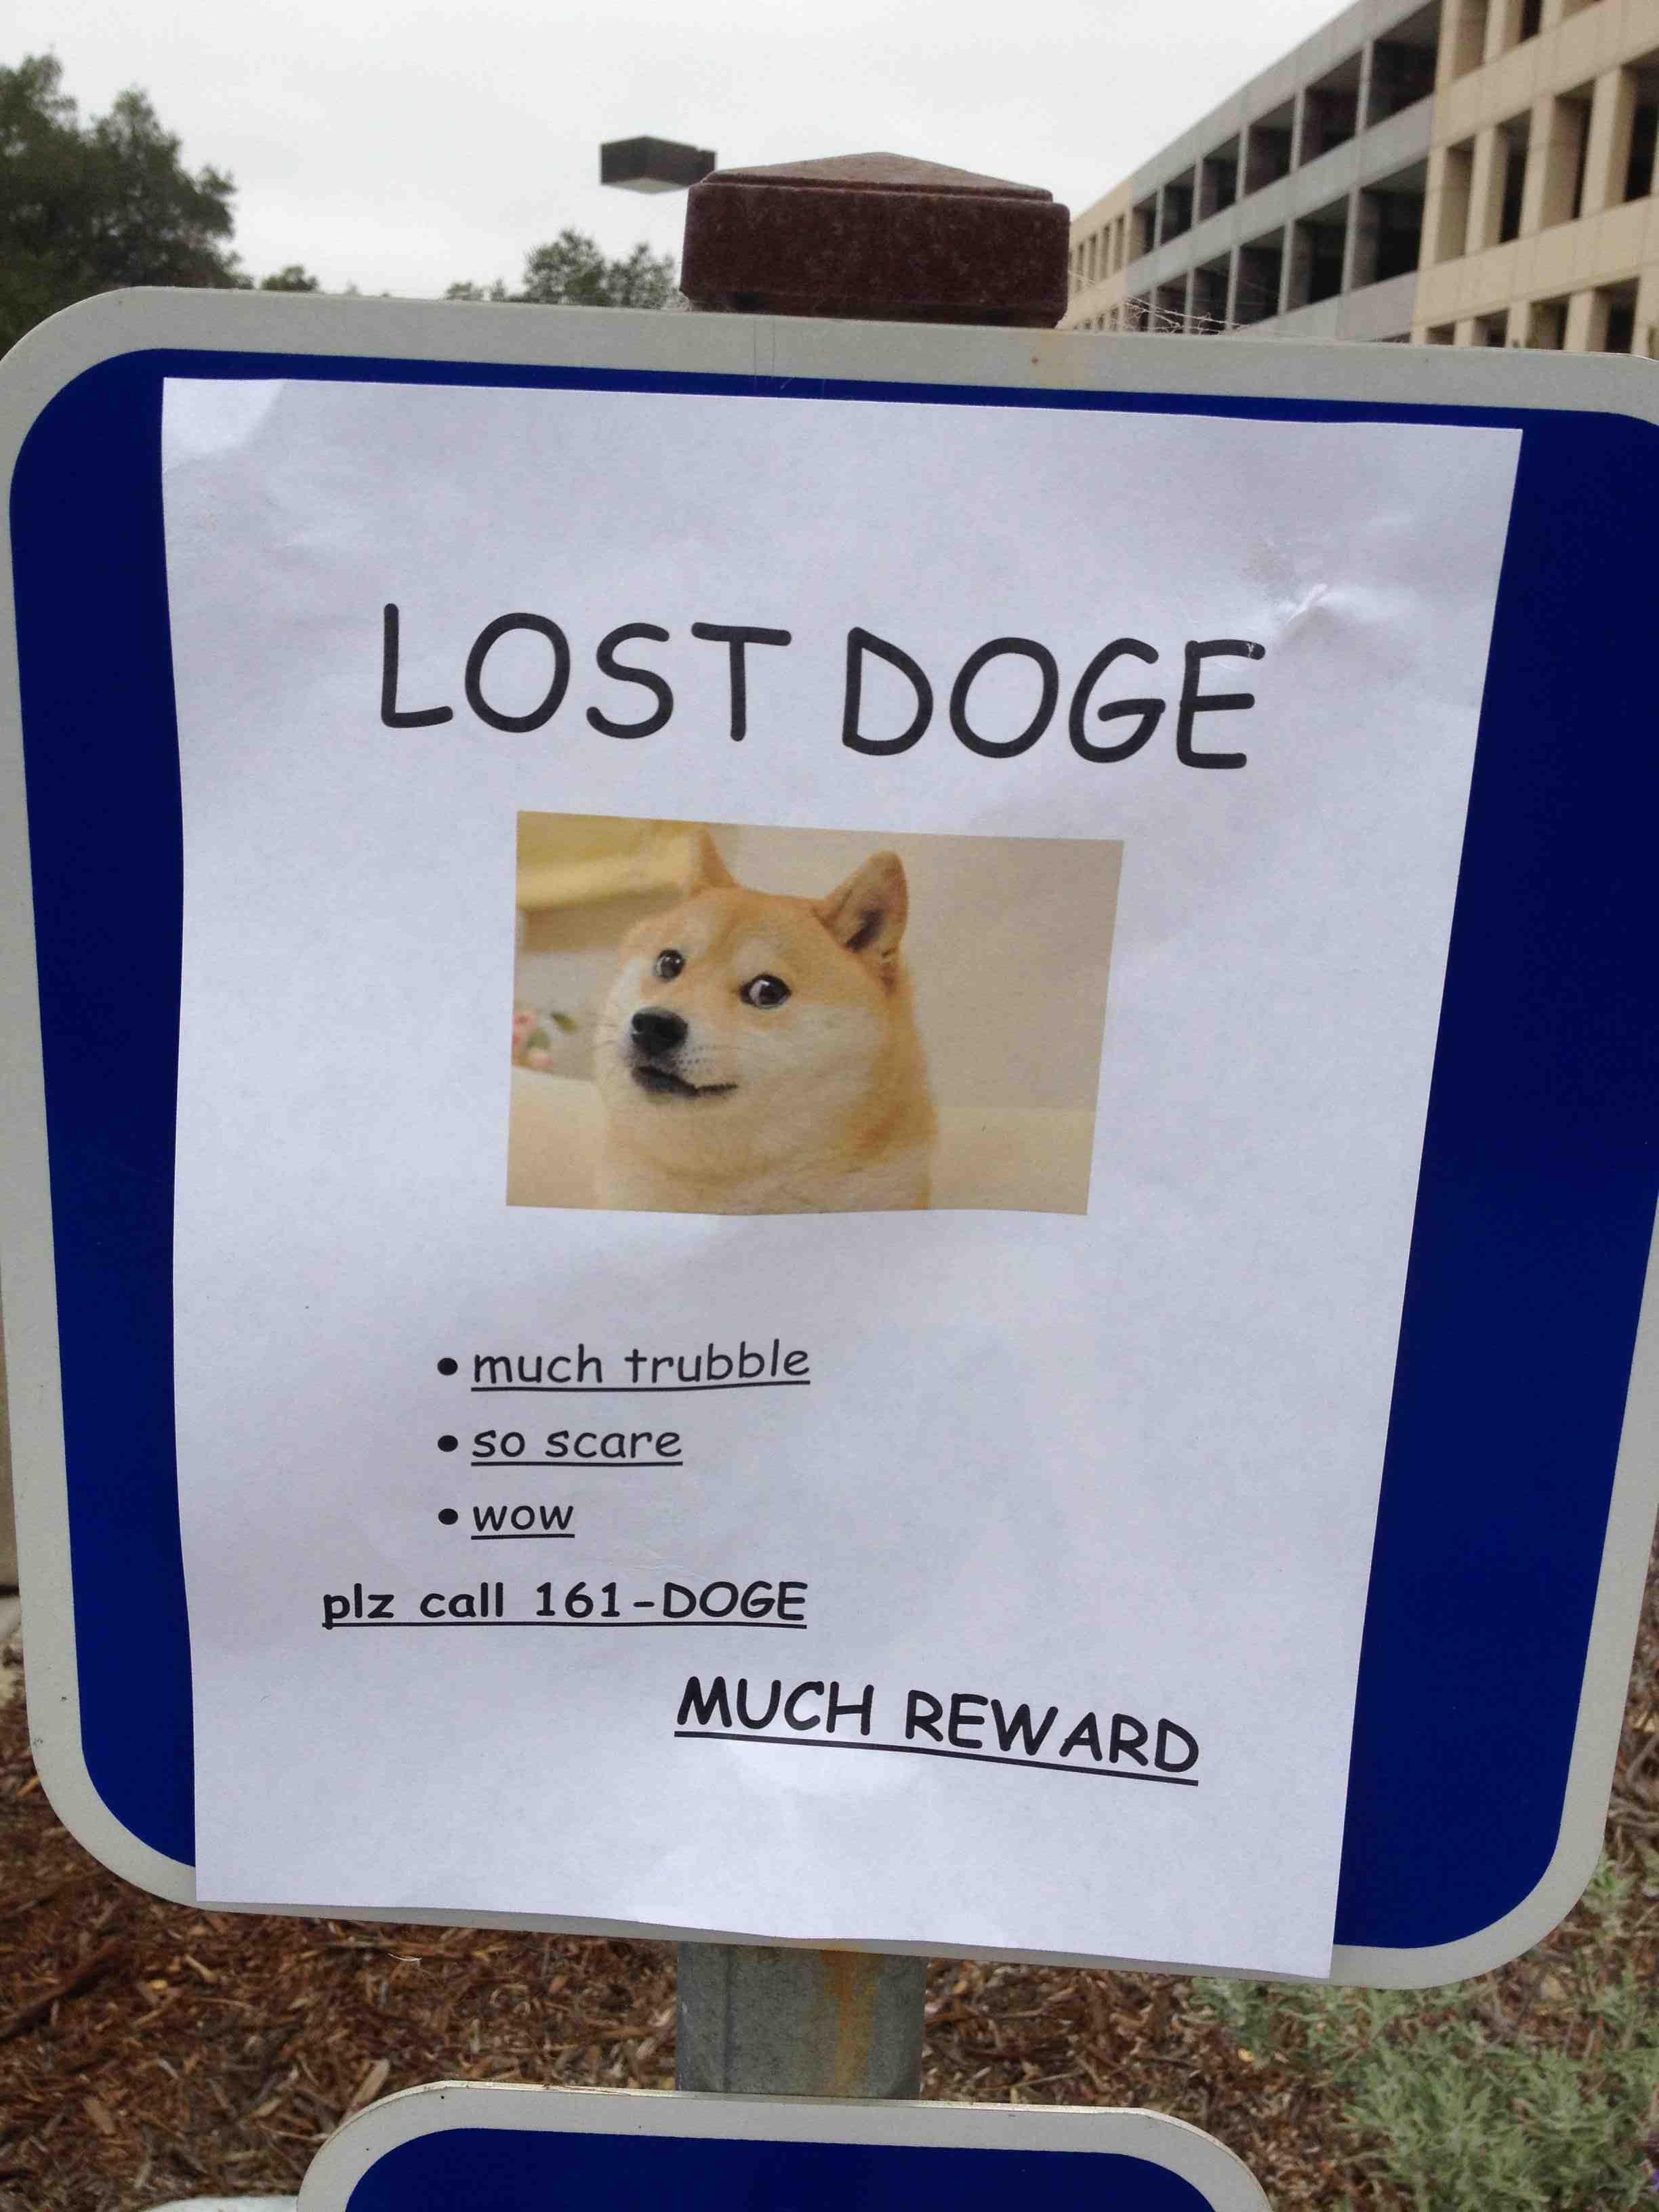 Lost Doge Meme ! Much Trouble, So Scare, Wow